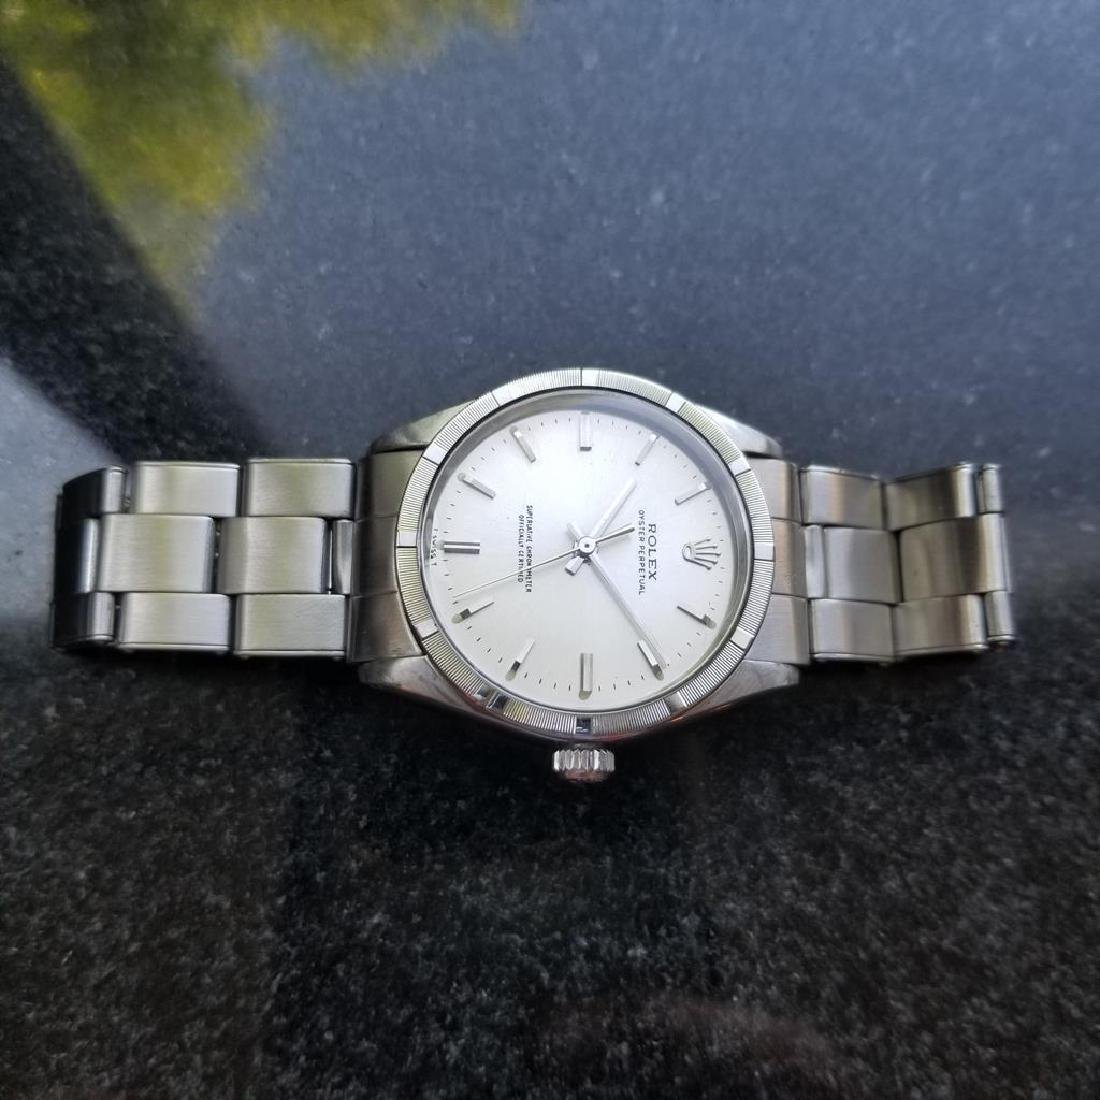 ROLEX Men's Oyster Perpetual 1007 Automatic cal.1570 - 5